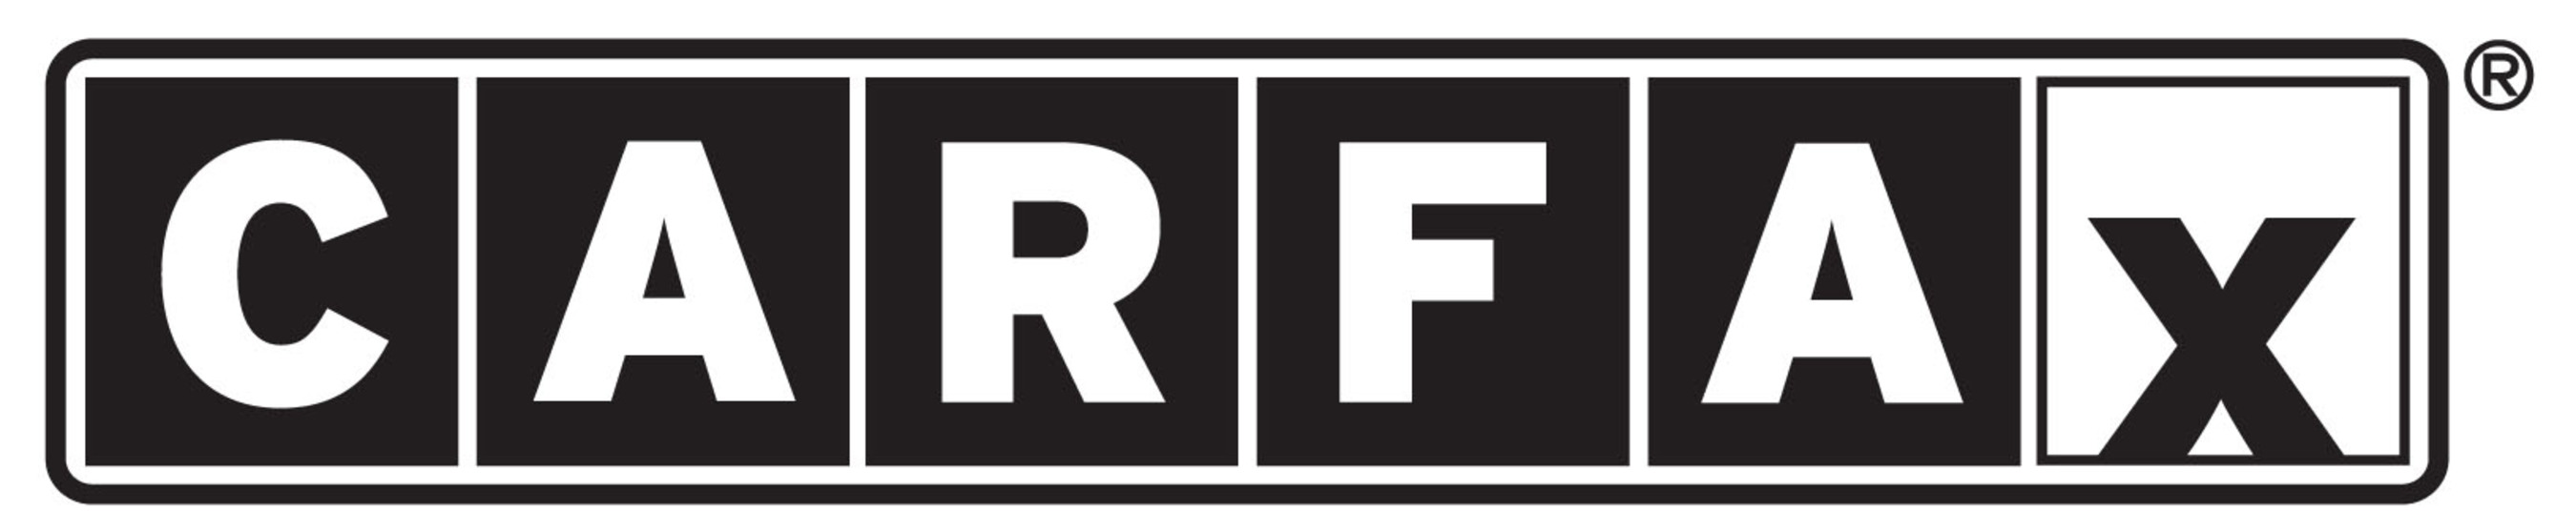 Image result for small carfax logo